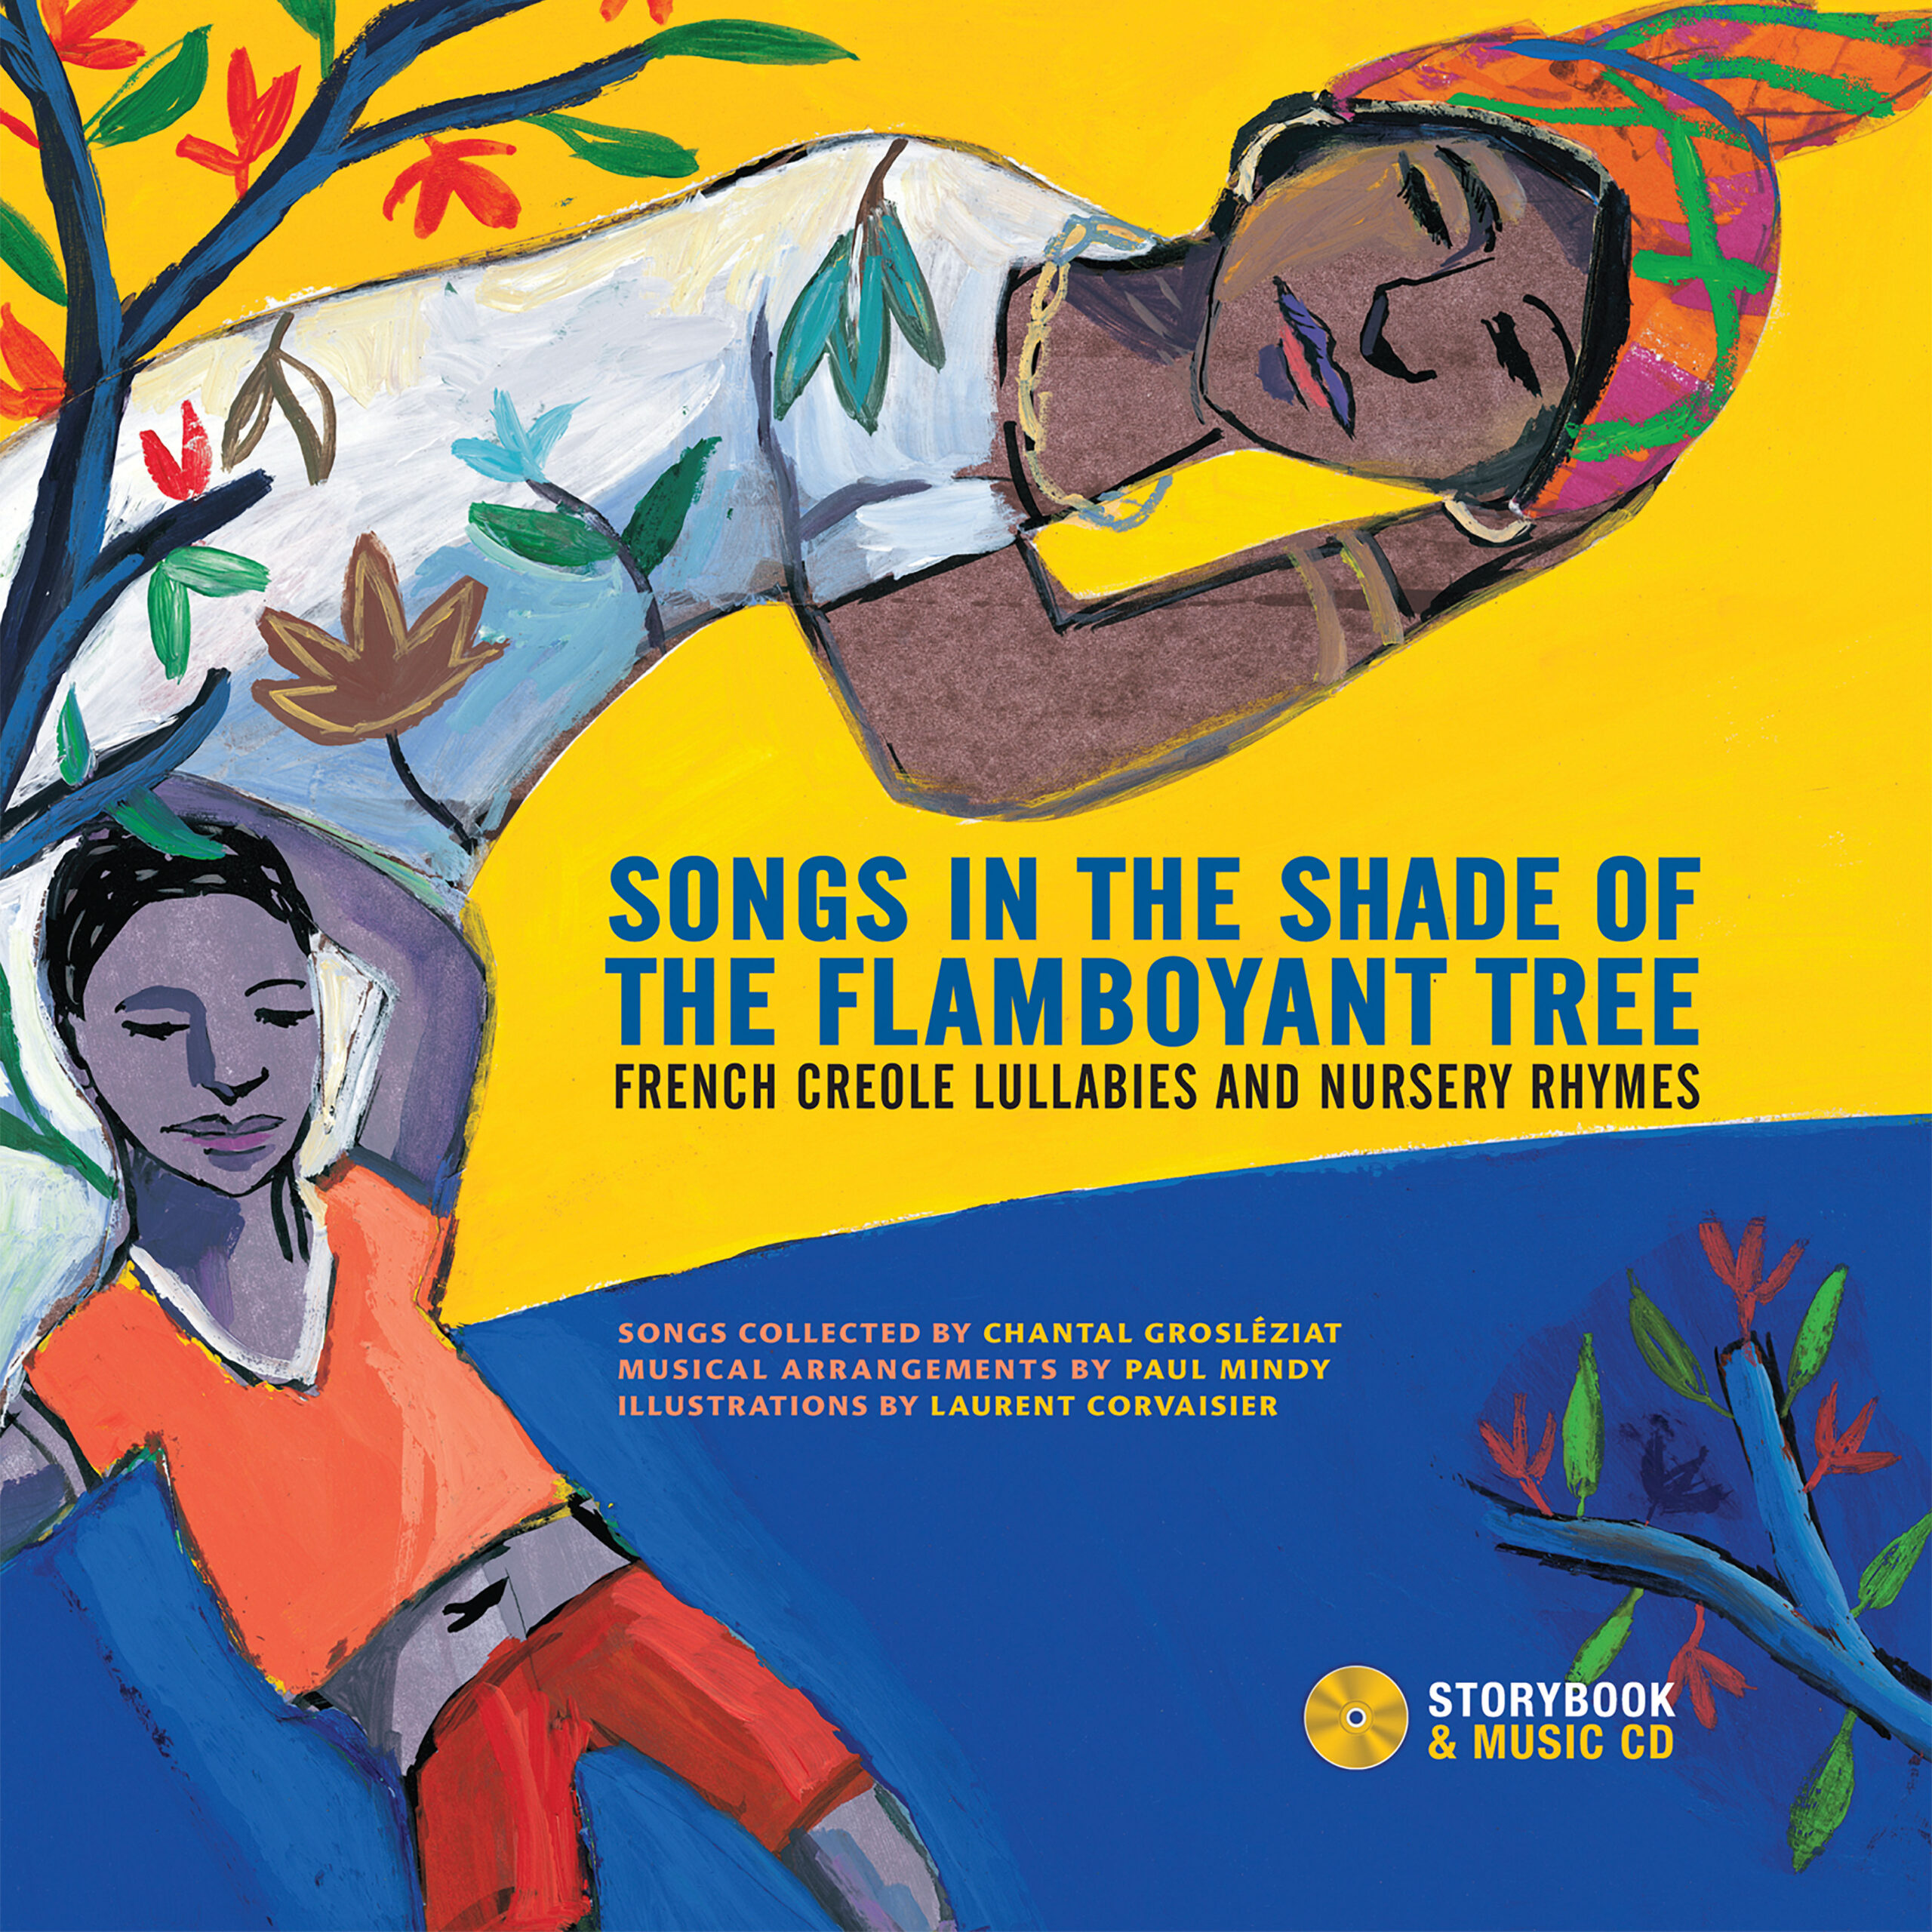 Songs in the Shade of the Flamboyant Tree, French-Creole Lullabies and Nursery Rhymes